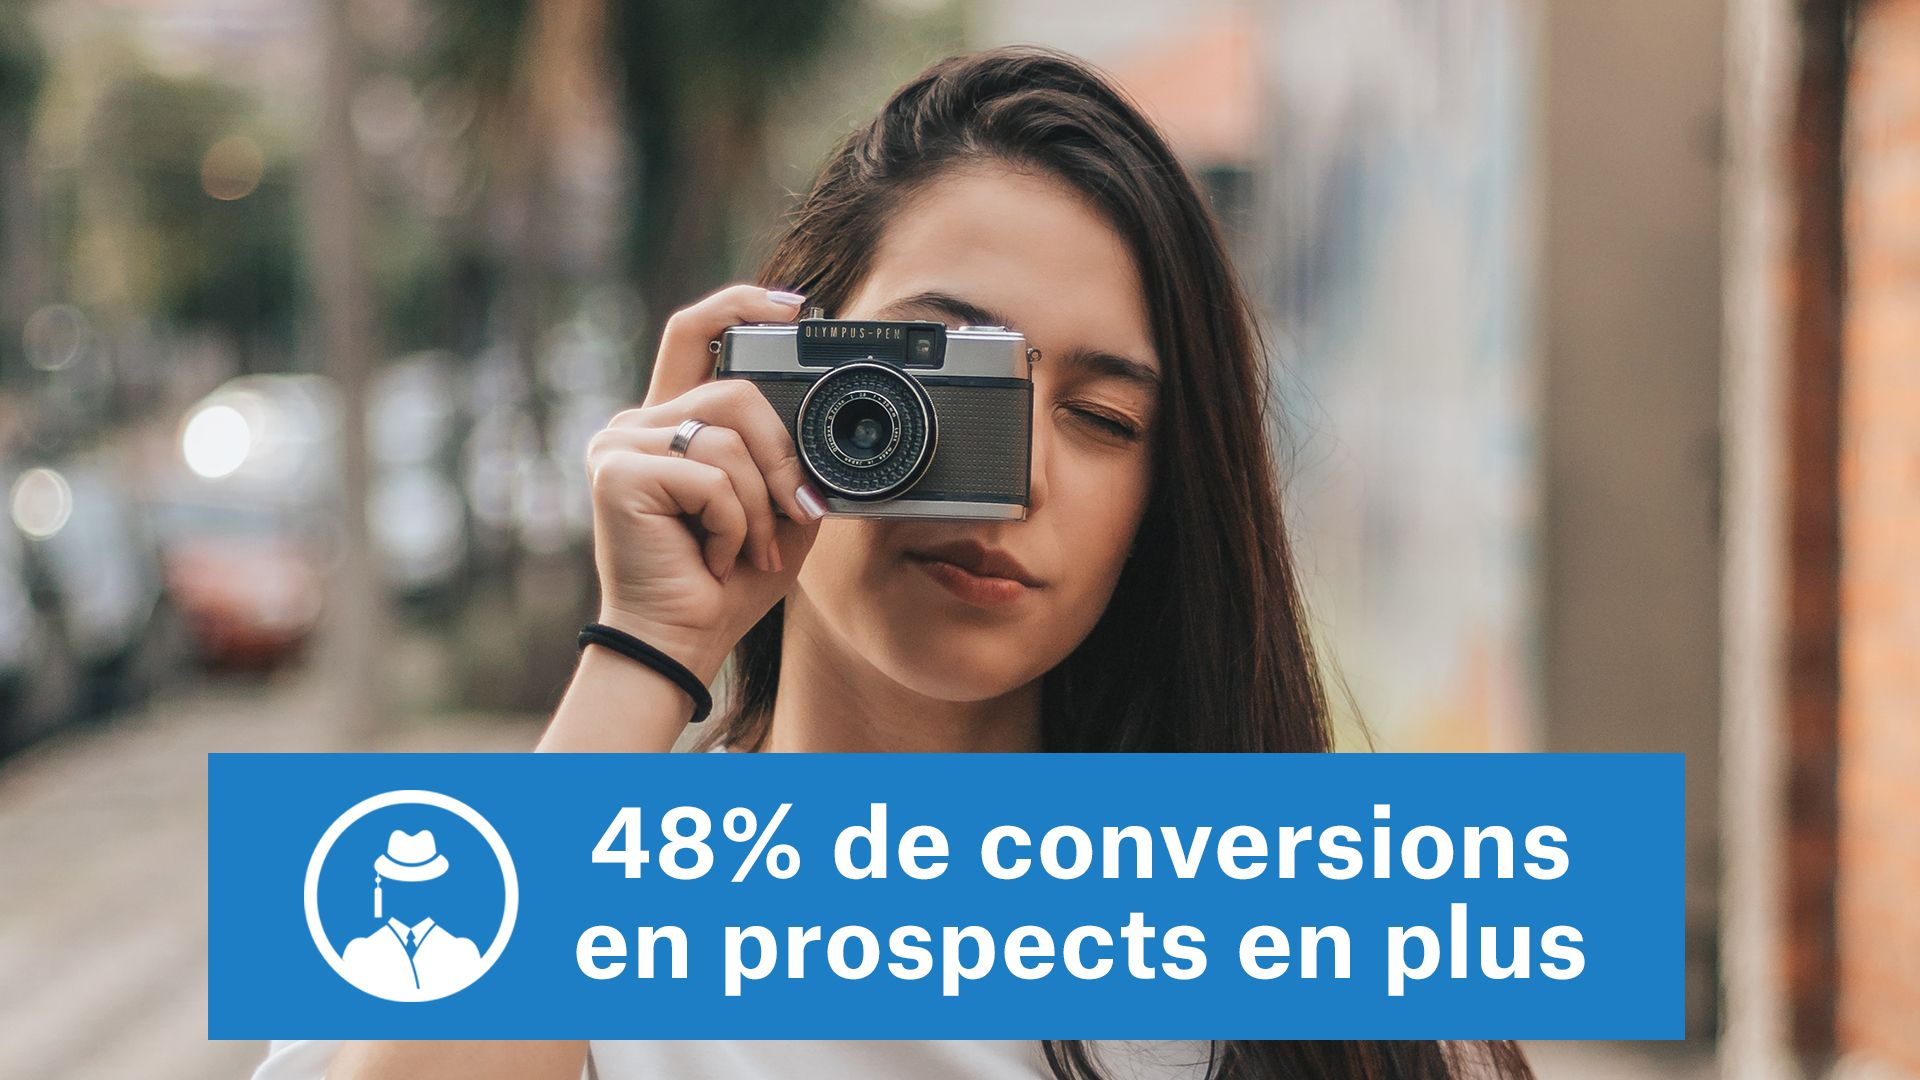 48% de conversions en prospects en plus [Réalisable en 5 min] #GrowthHacking #WebMarketing #FormationGrowthHacking #CentreDeFormationFrance #TunnelAARRR #AARRR #SocialMedia #CommunityManagement #SEO #MarketingDigital #SiteWeb